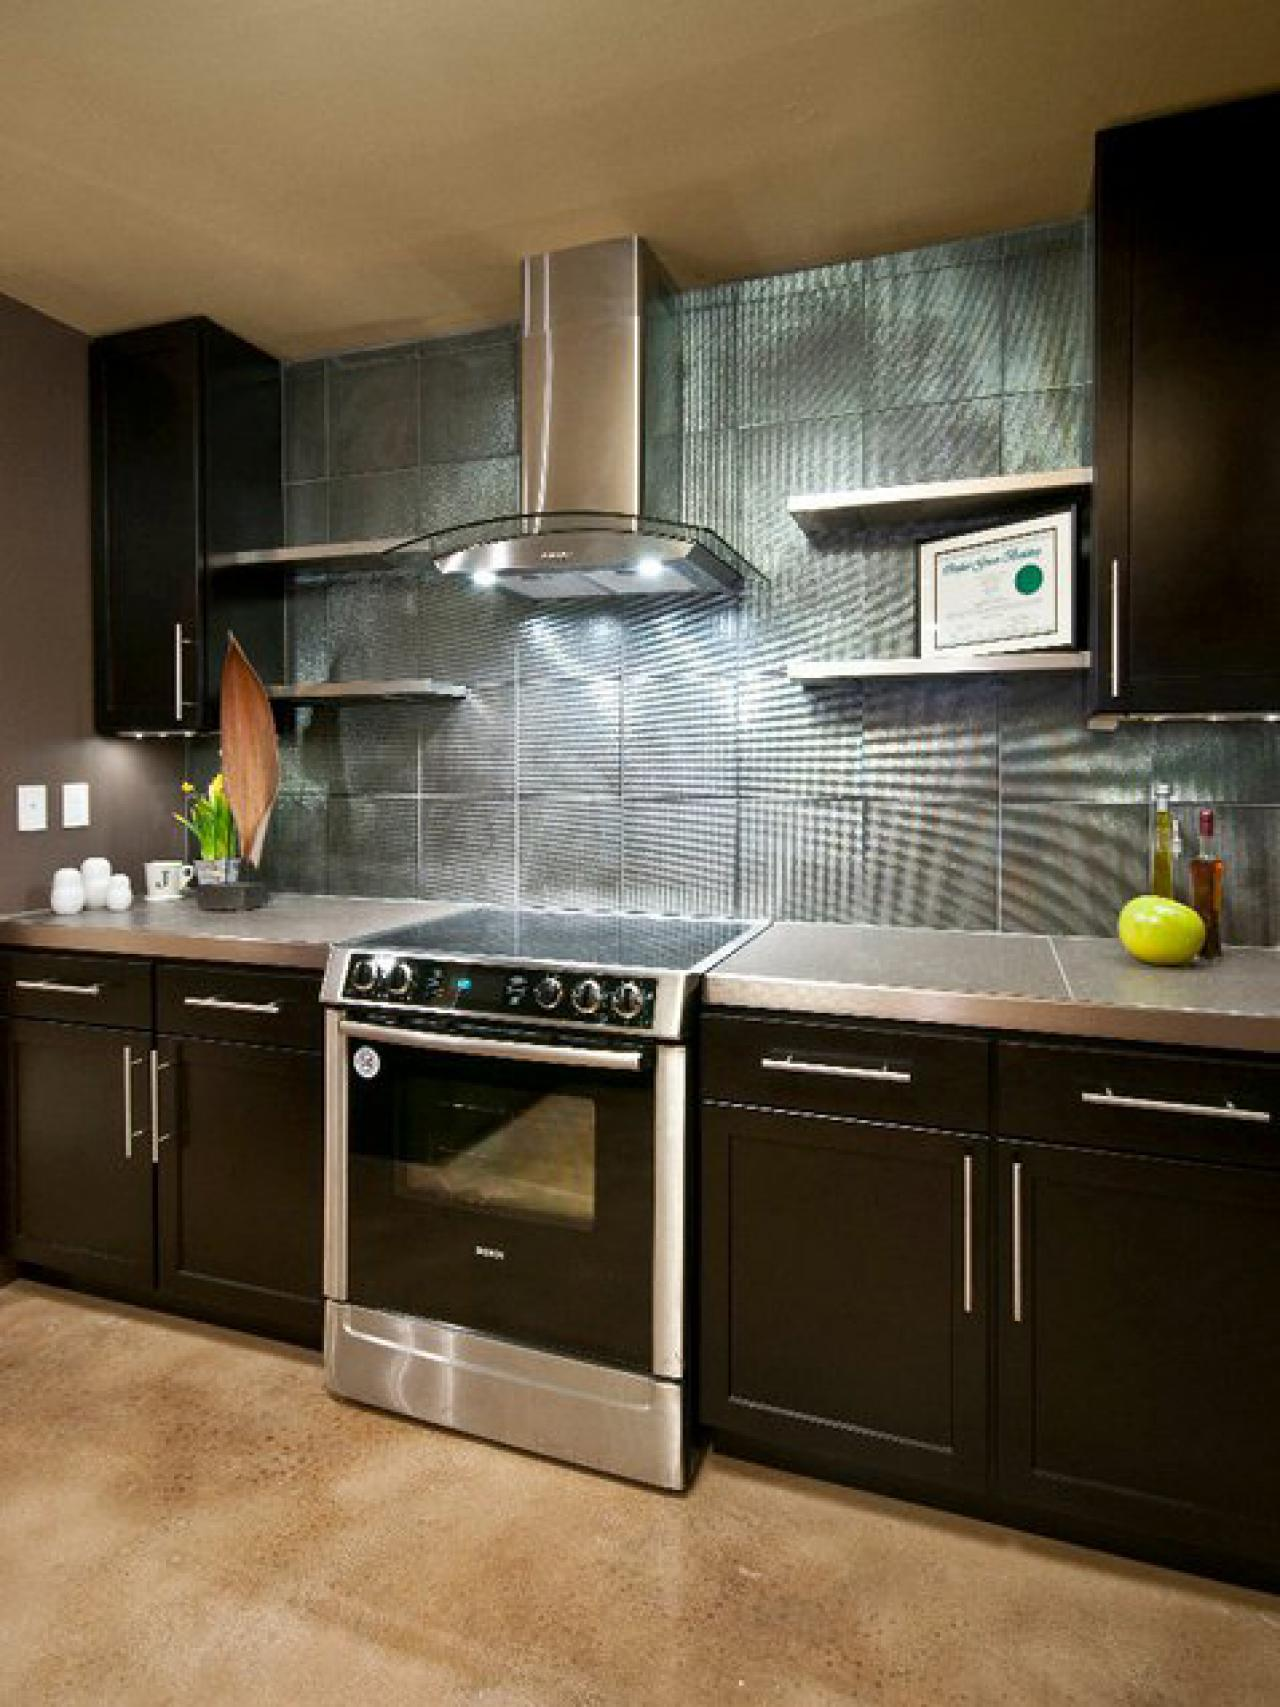 Do it yourself diy kitchen backsplash ideas hgtv Contemporary kitchen tiles ideas